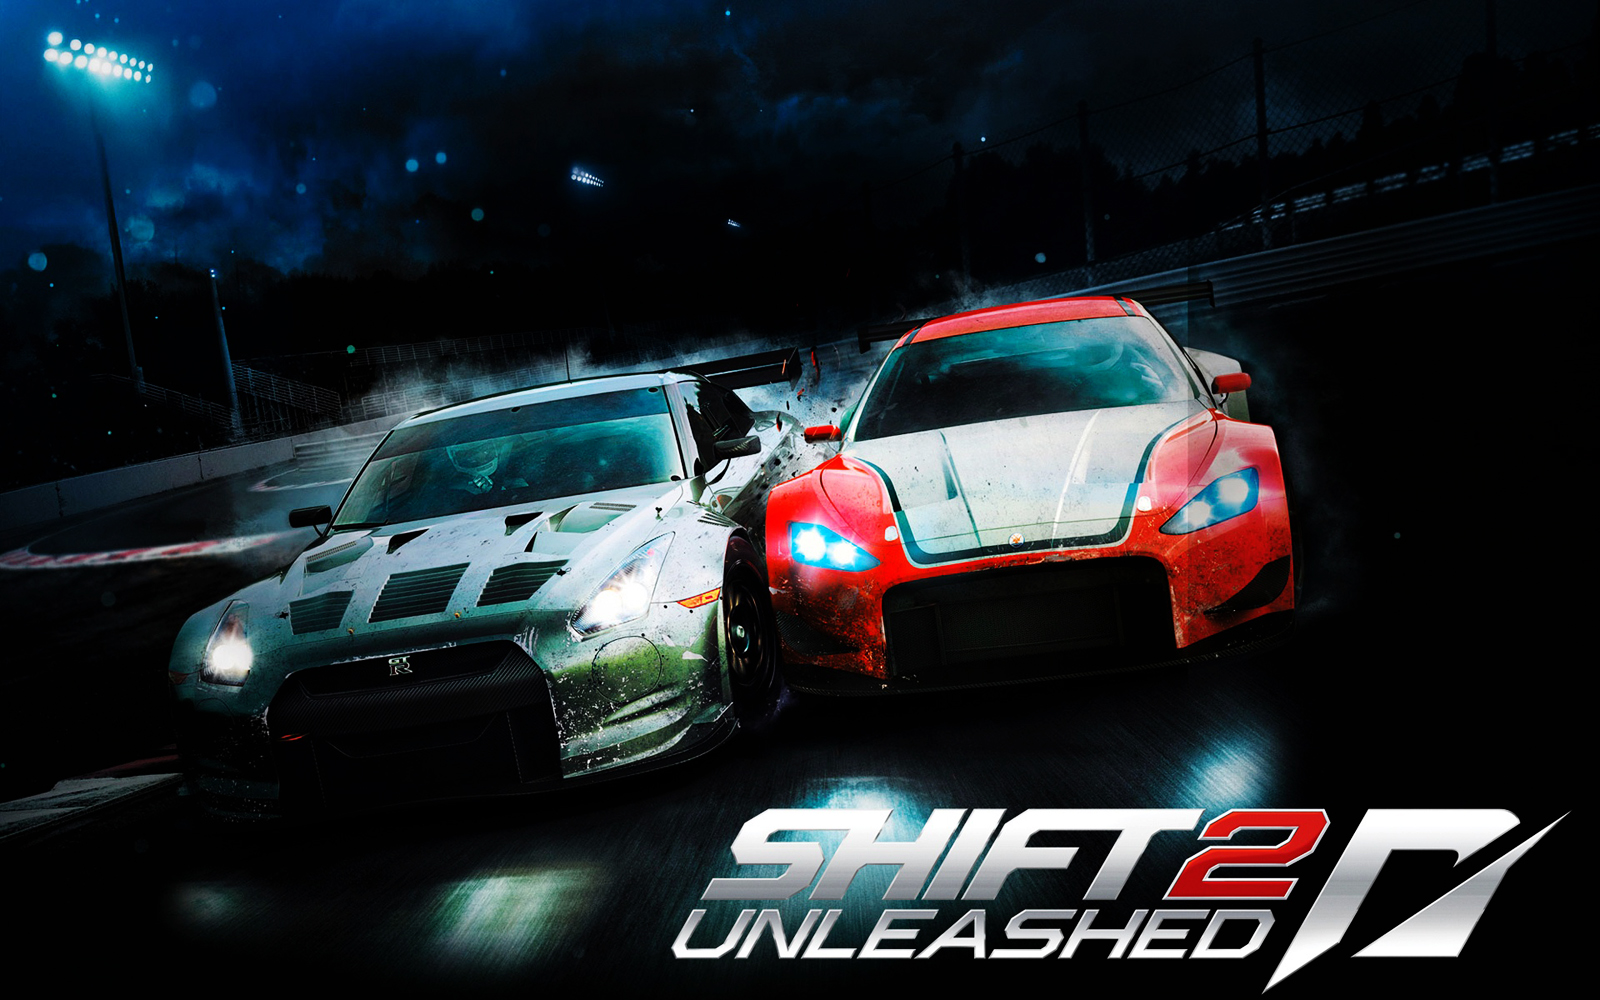 shift 2 unleashed nfs hd wallpapers desktop wallpapers. Black Bedroom Furniture Sets. Home Design Ideas